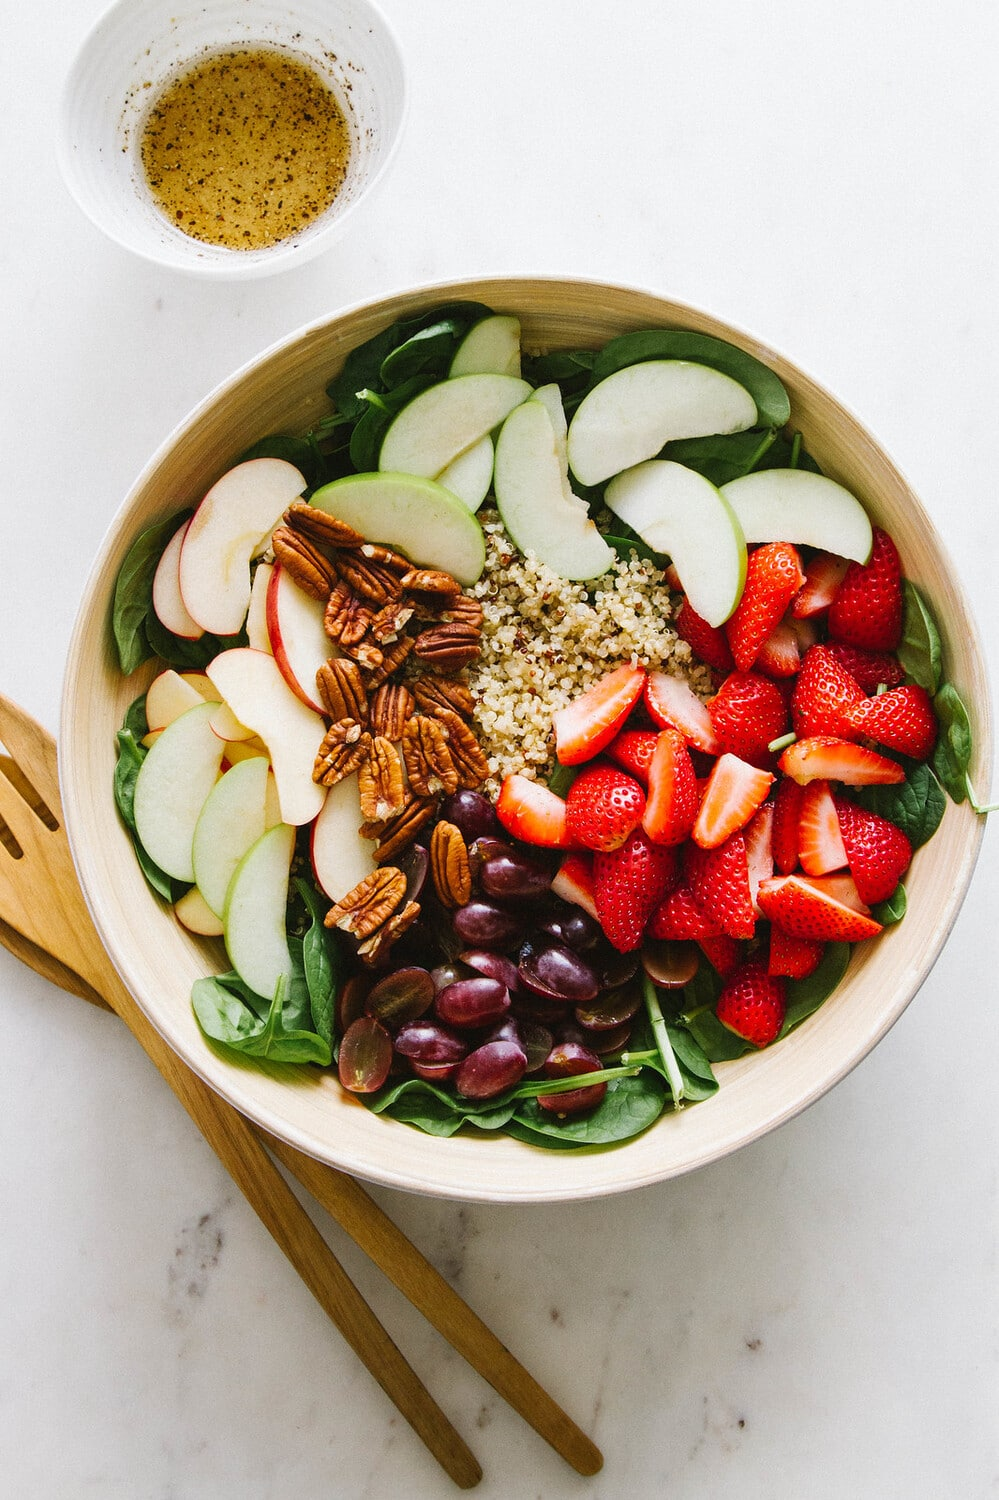 top down view of a large serving bowl filled with the prepped spinach salad ingredients before mixing.